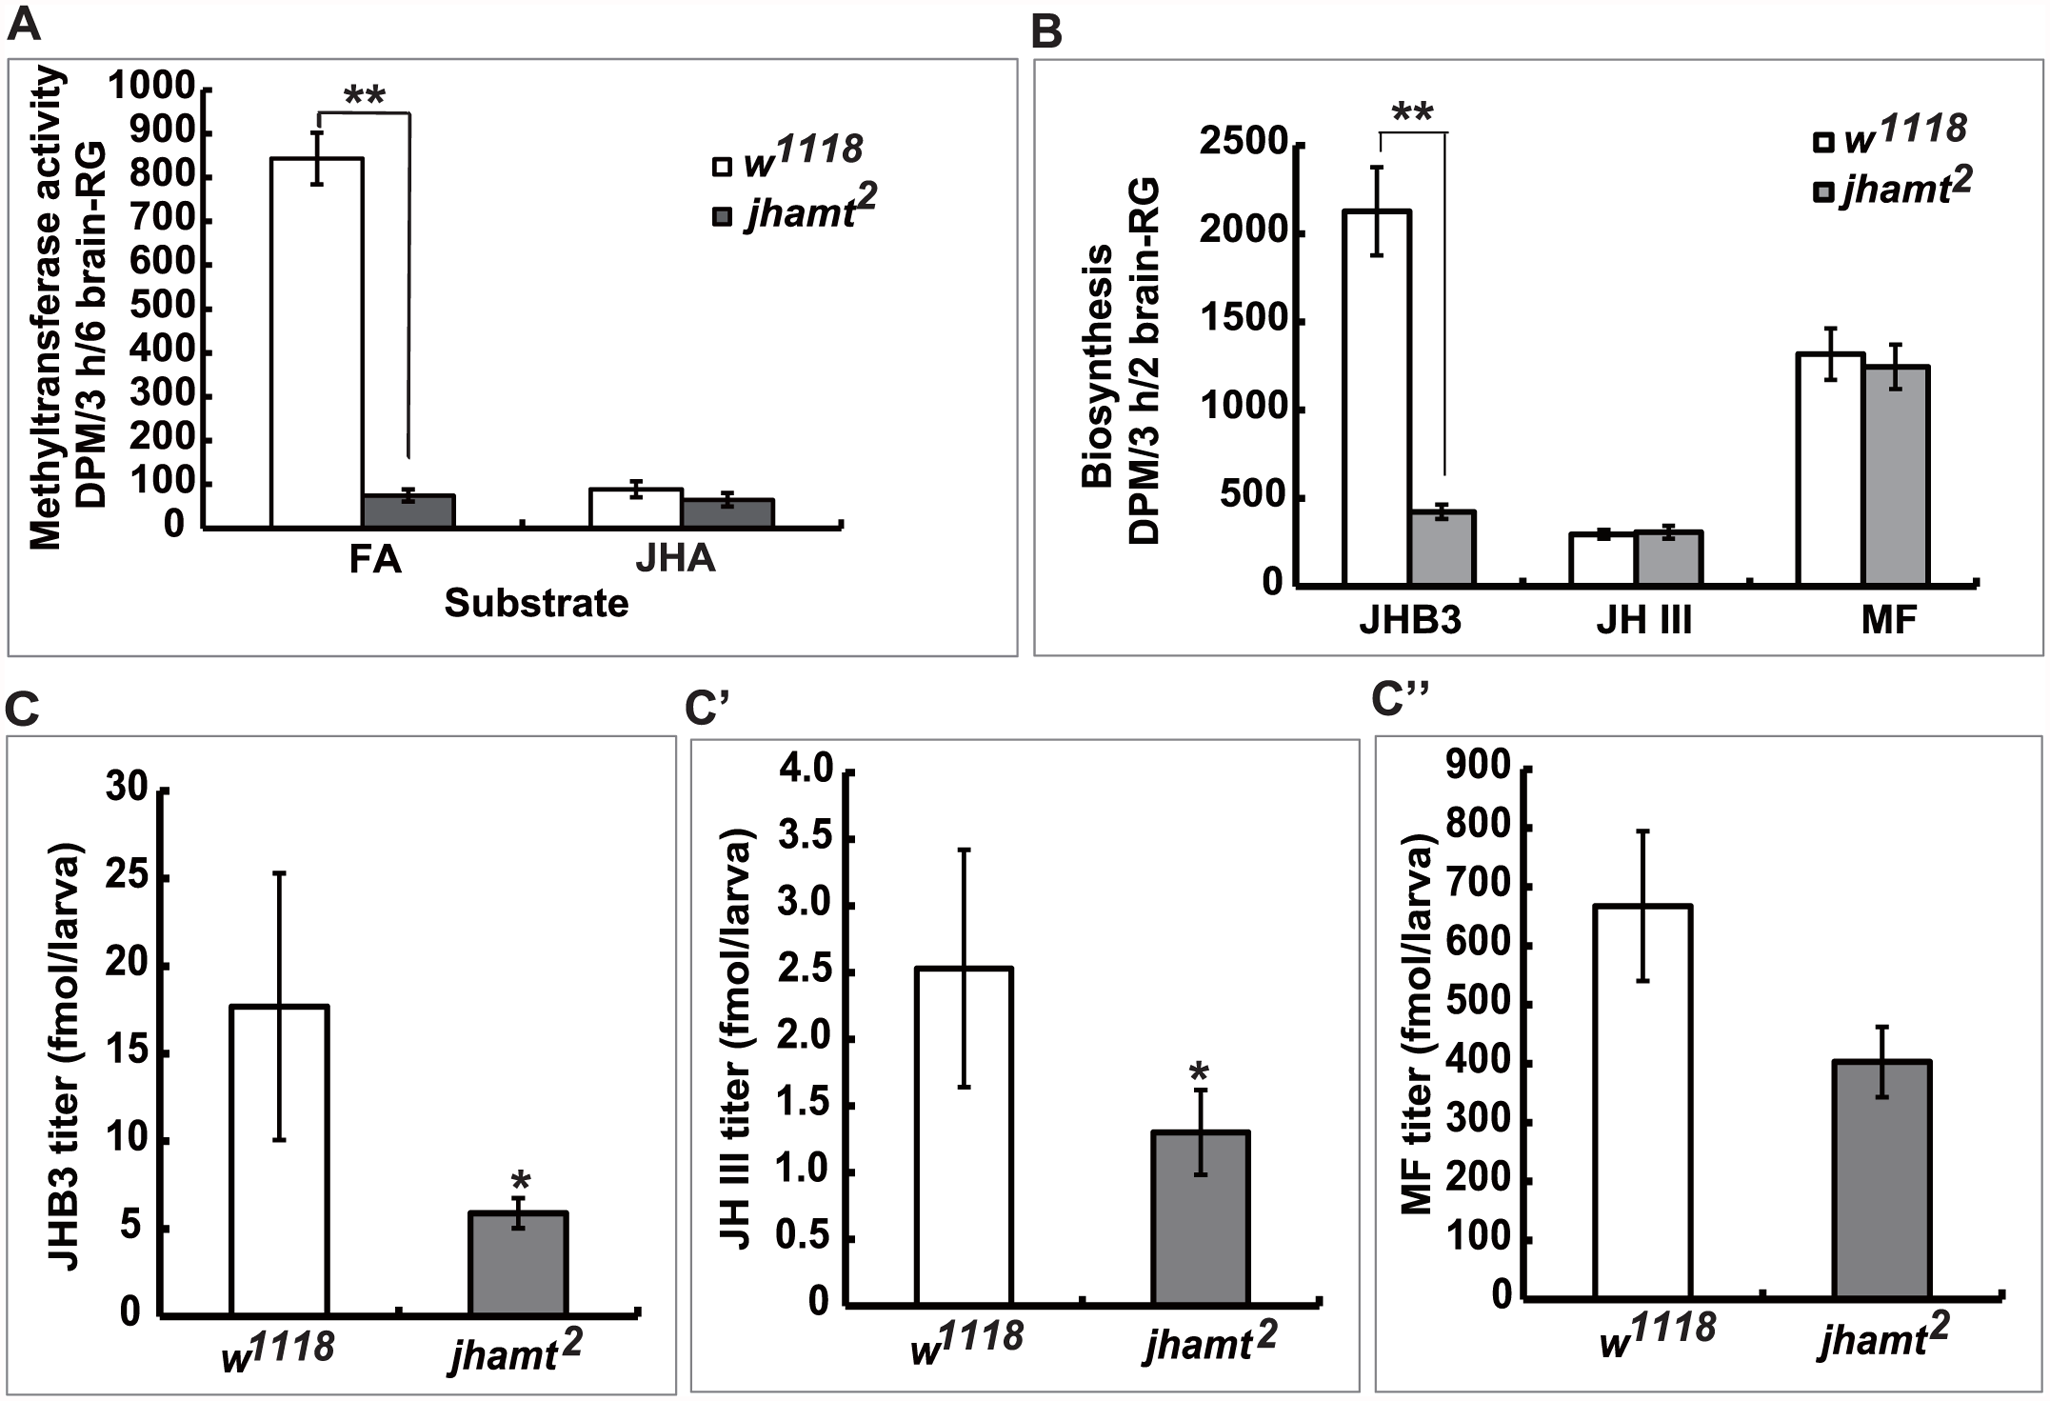 Mutation of <i>jhamt</i> decreases JHB3 but not JH III and MF biosynthesis.